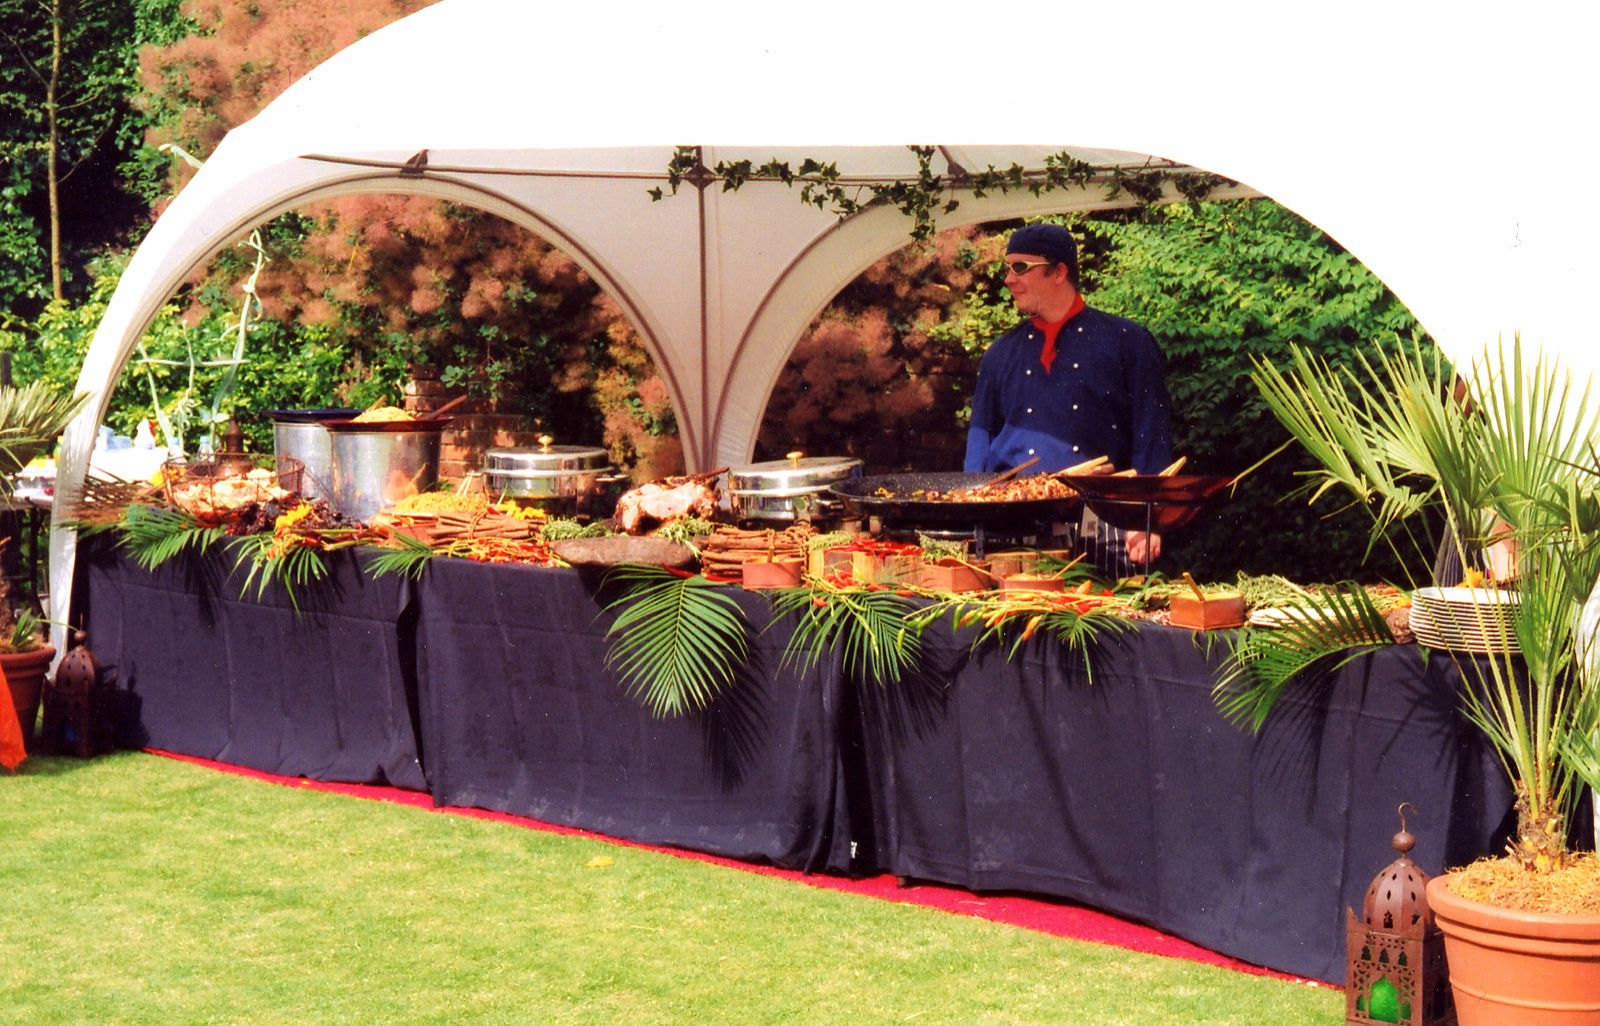 Street food catering at a party in a marquee